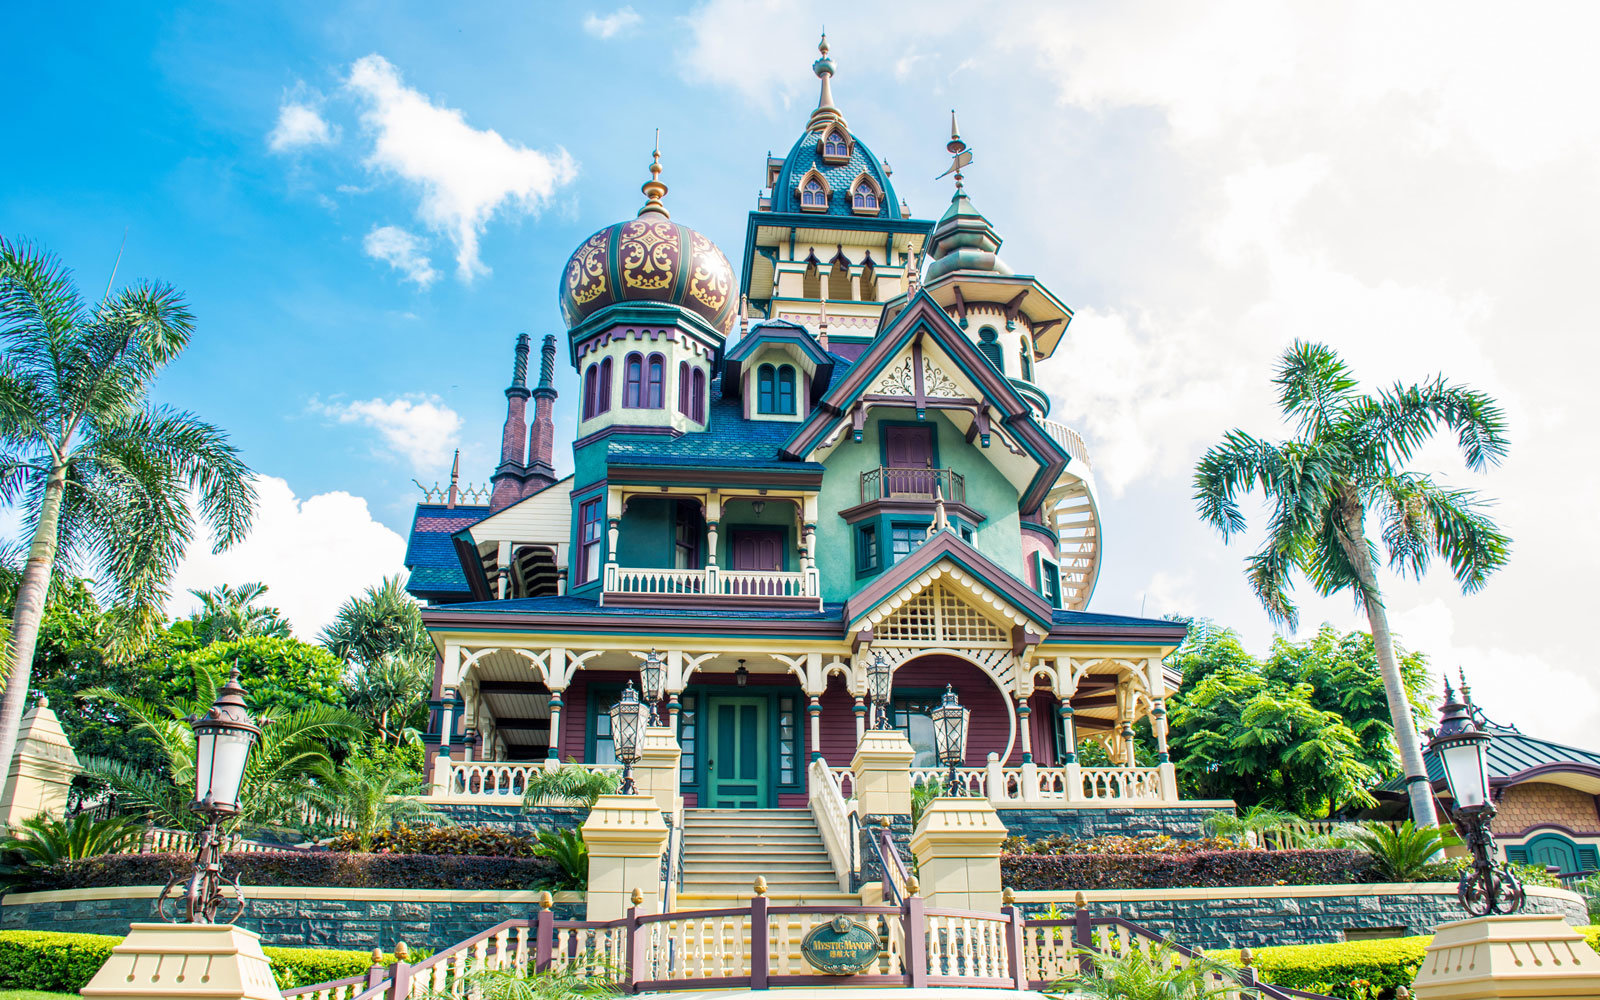 Mystic Manor — Hong Kong Disneyland